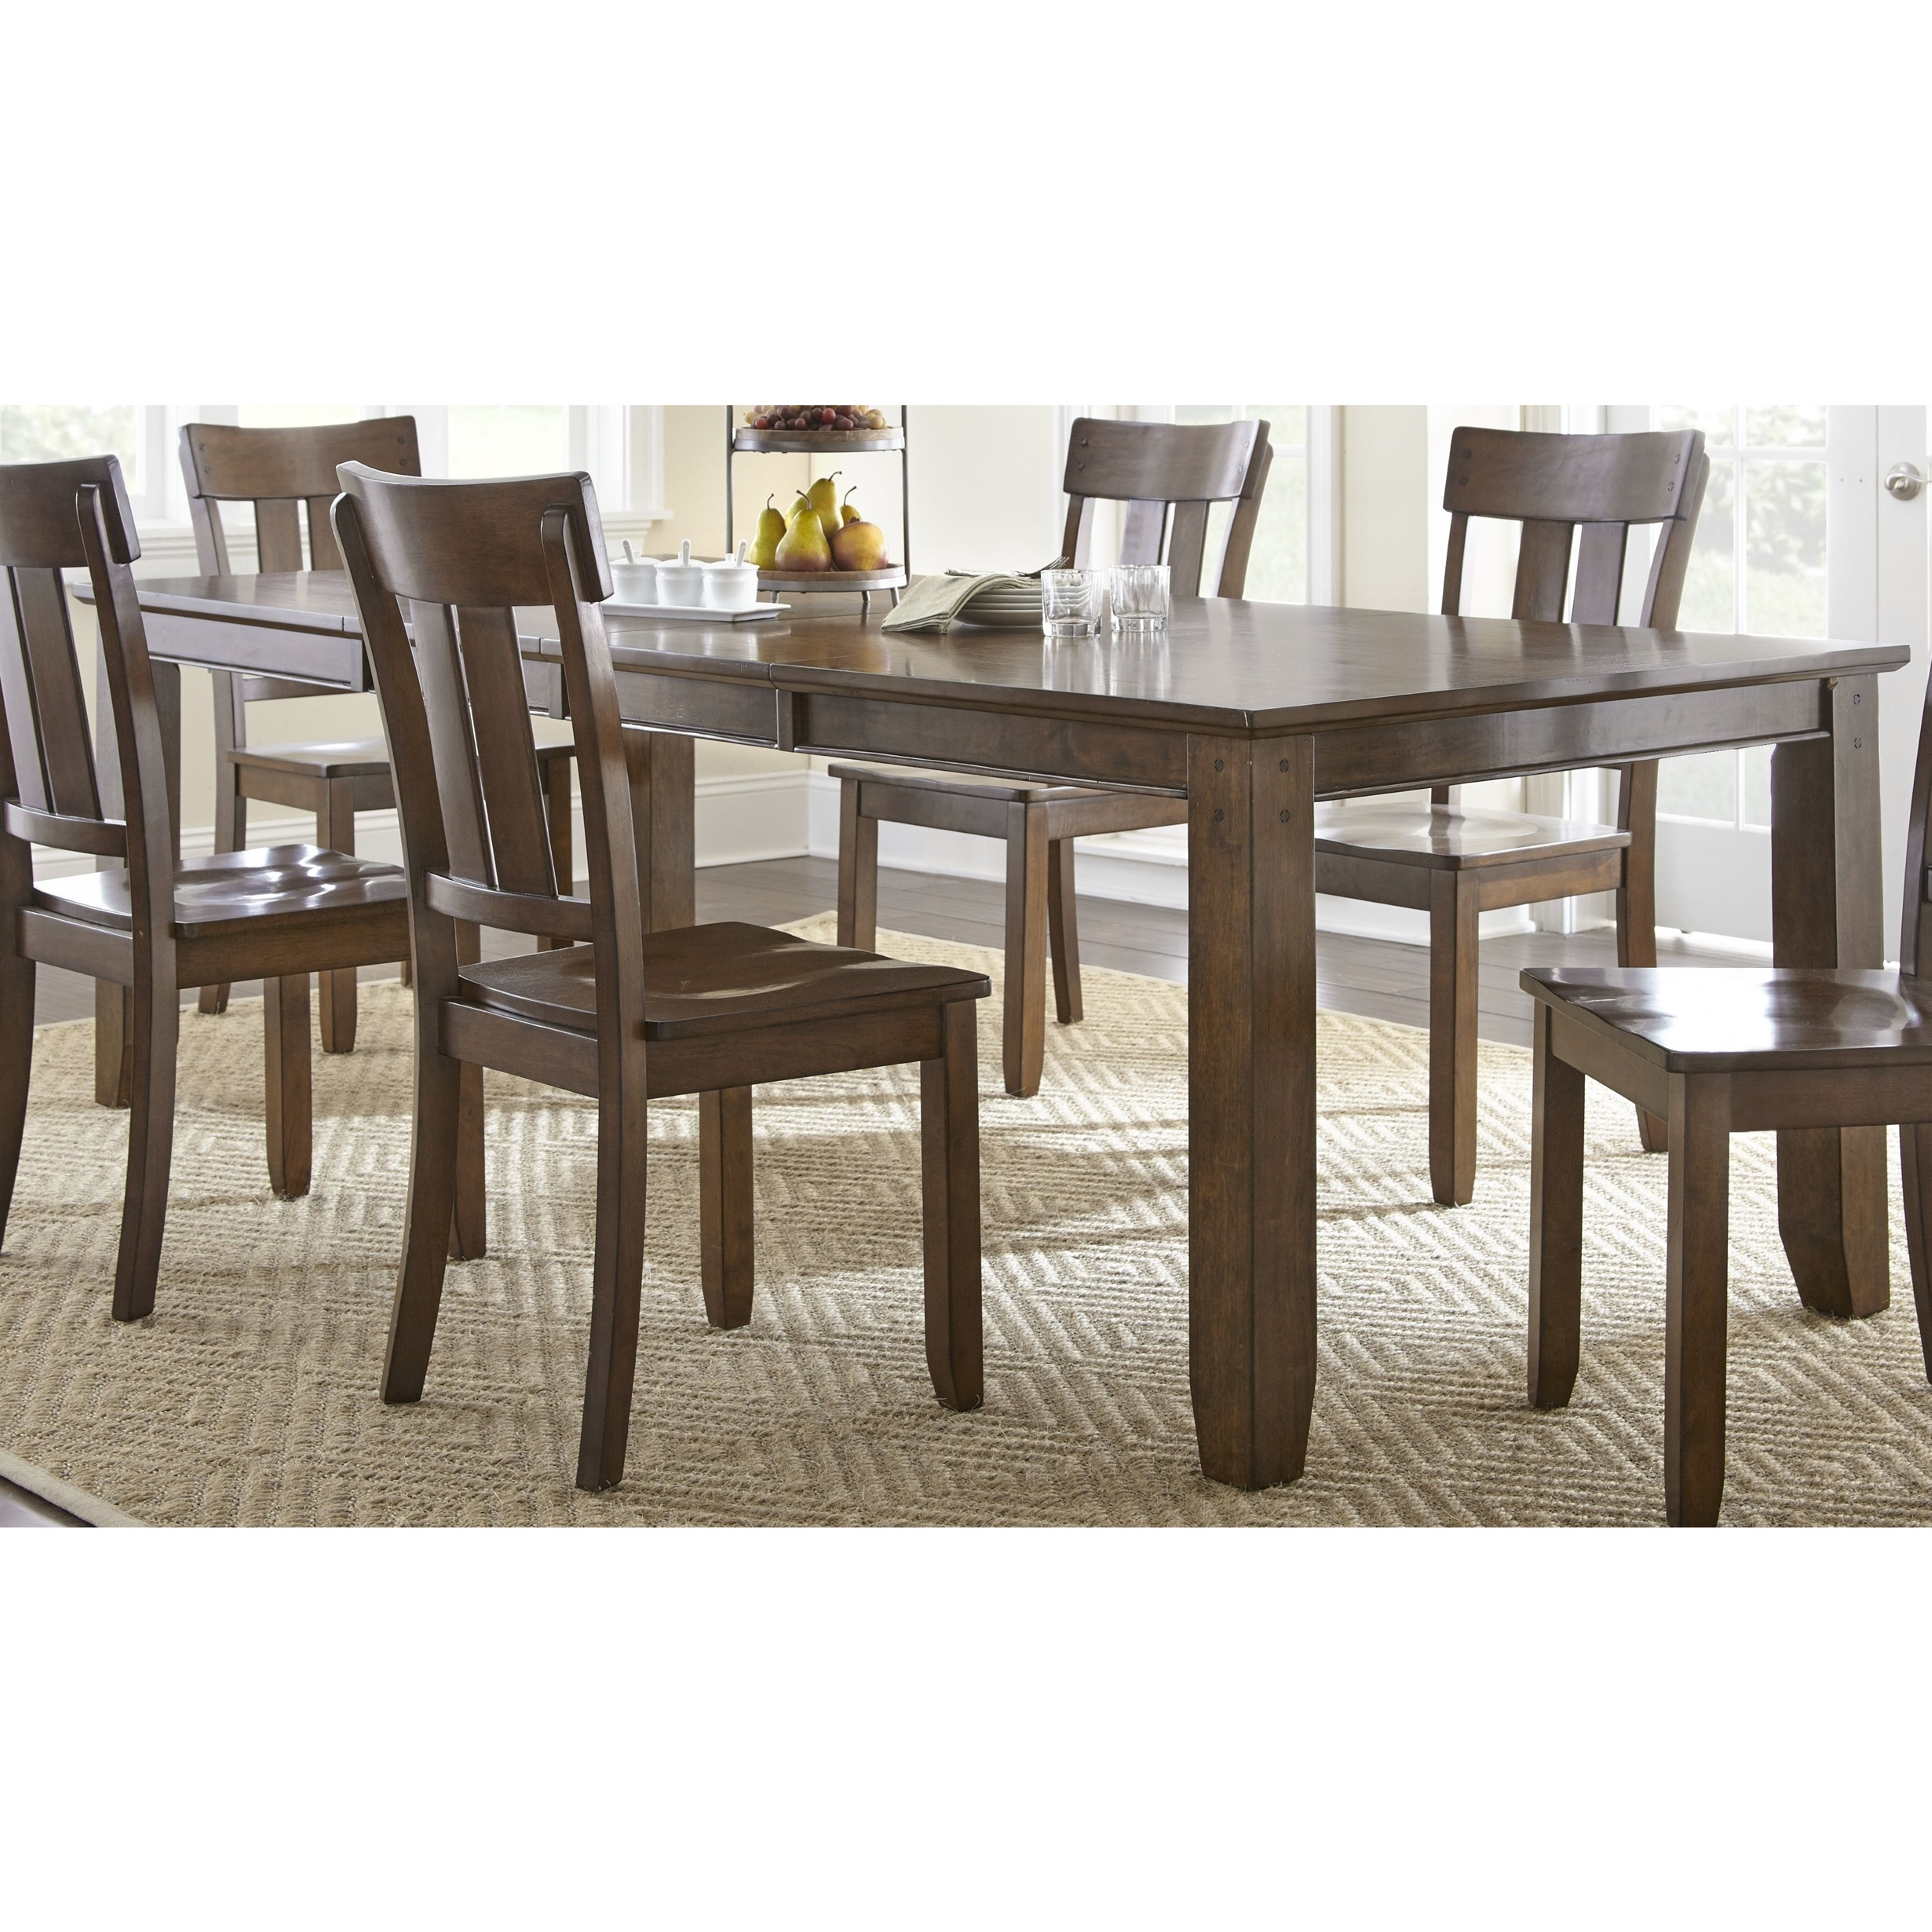 Kylie 96 Inch Dining Table By Greyson Living Brown Overstock 13329041